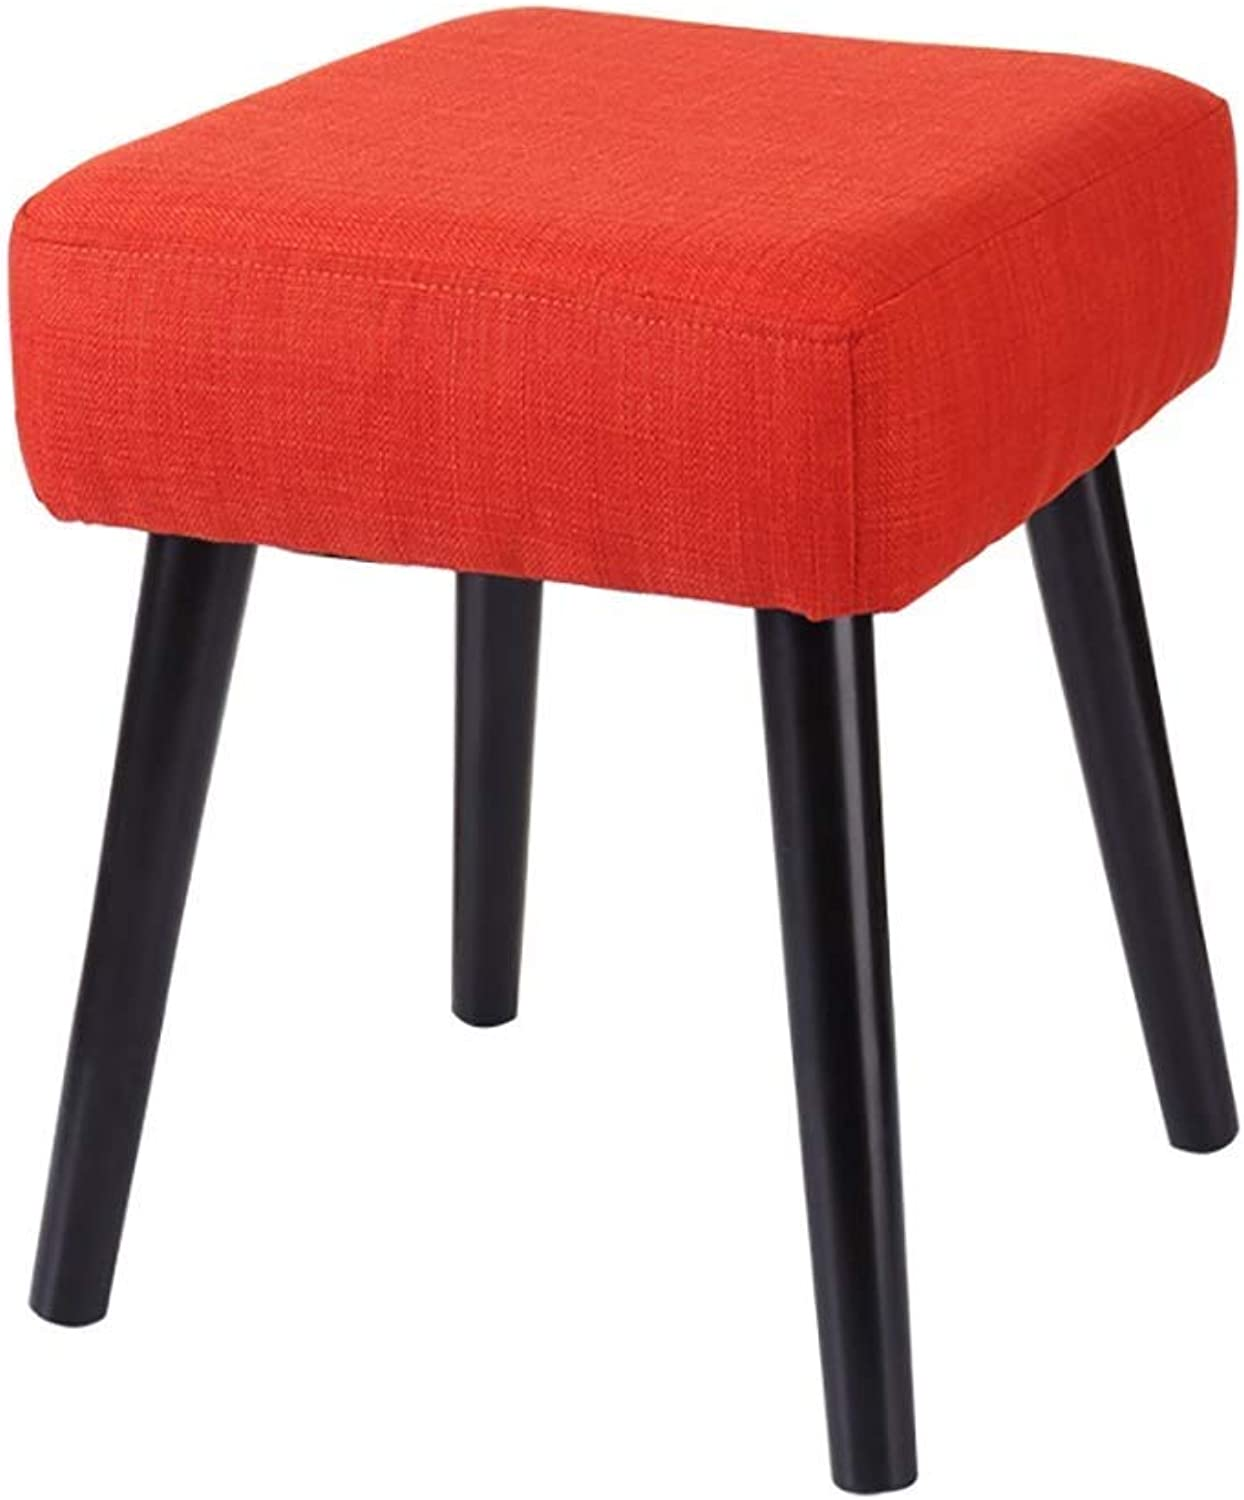 European Chair Change shoes Stool Fashion Square Stool Solid Wood Stool Fabric Sofa Stool GMING (color   Red)